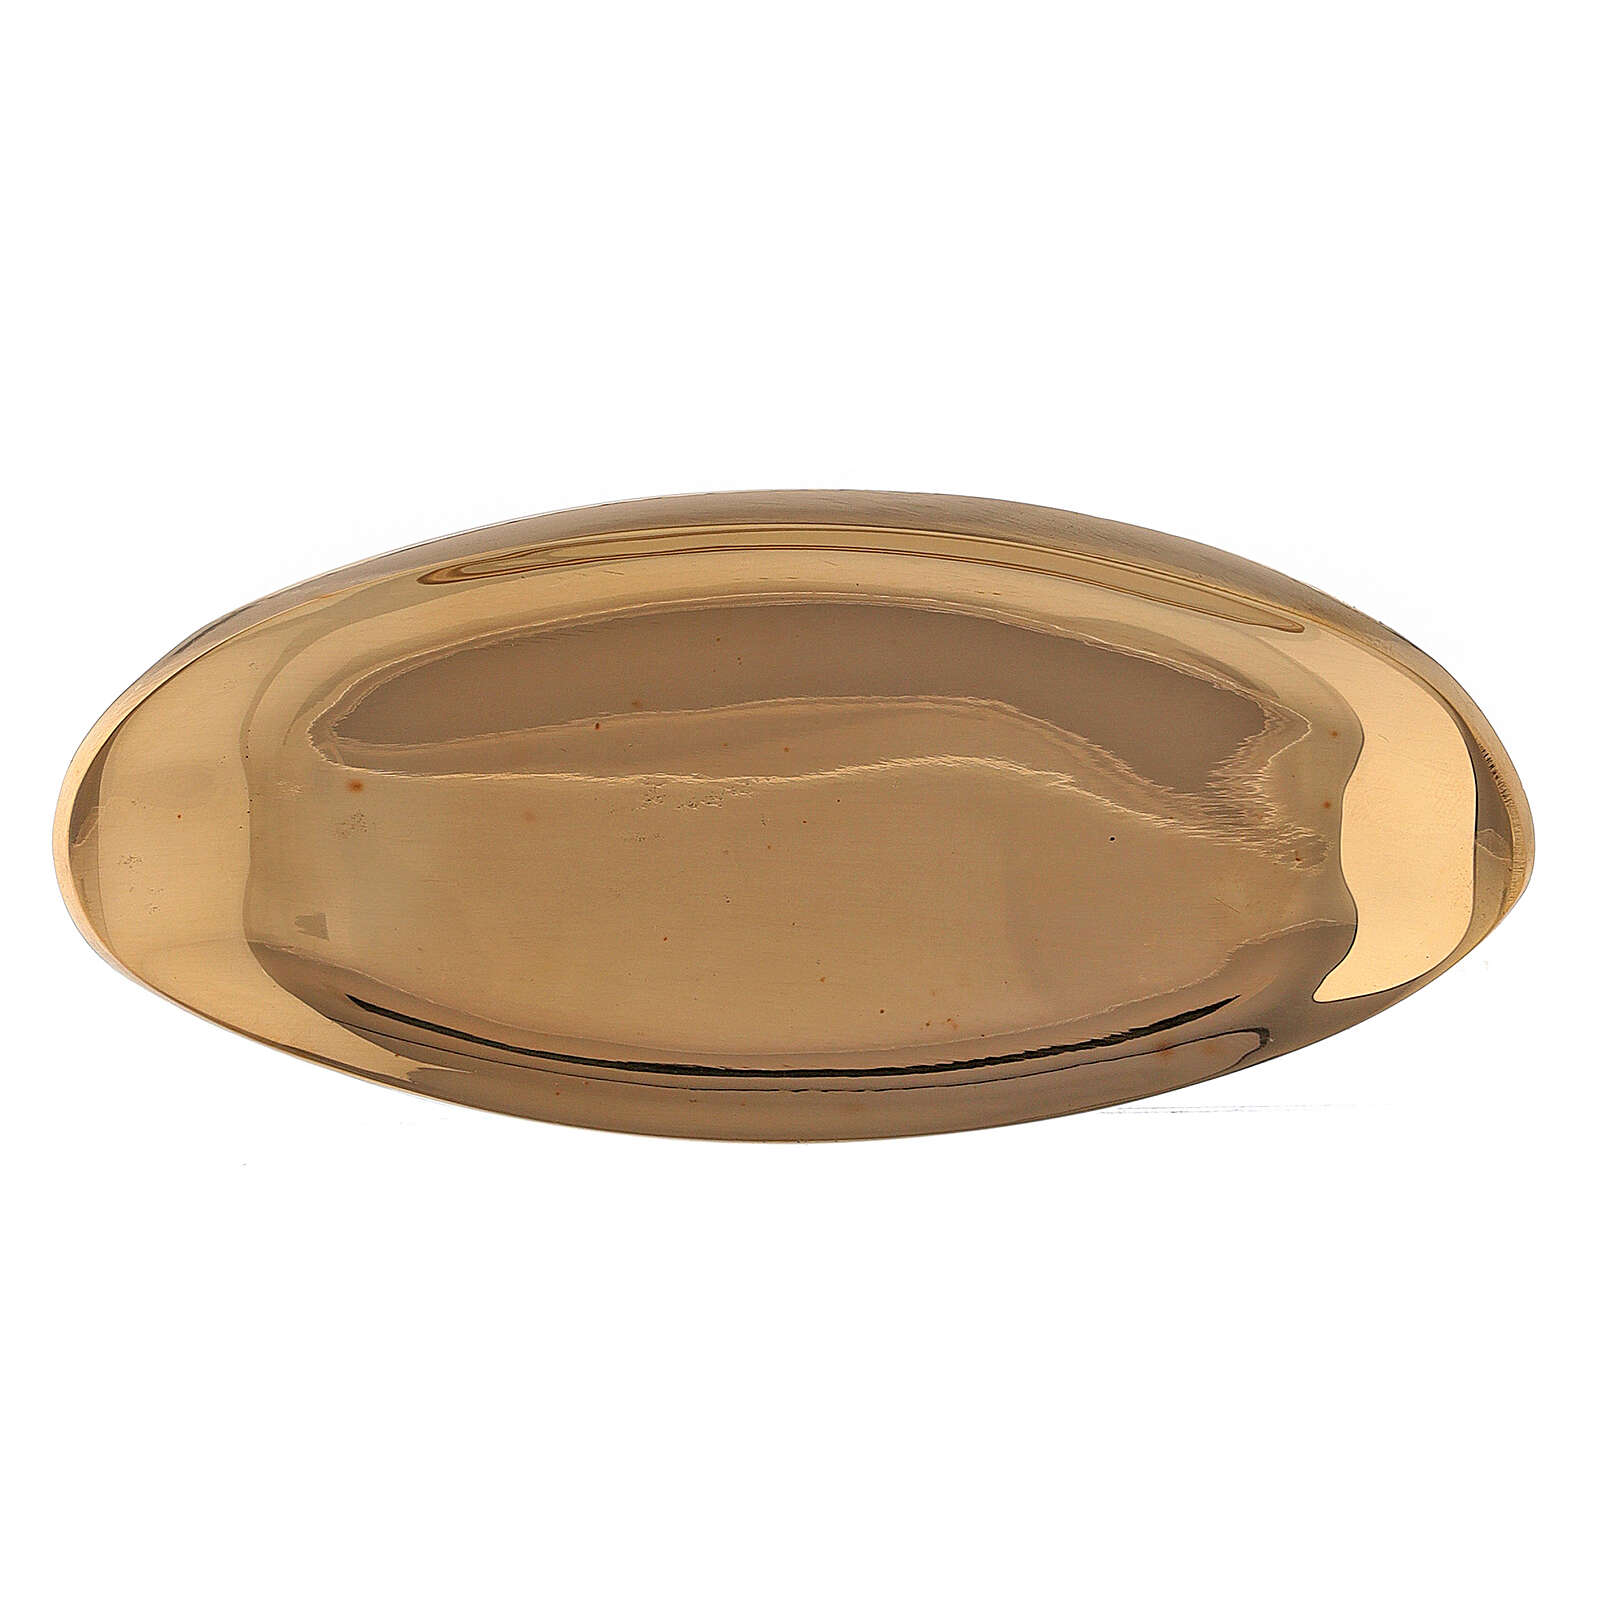 Boat shaped candle holder plate in polished gold plated brass 3 1/2x1 1/2 in 3